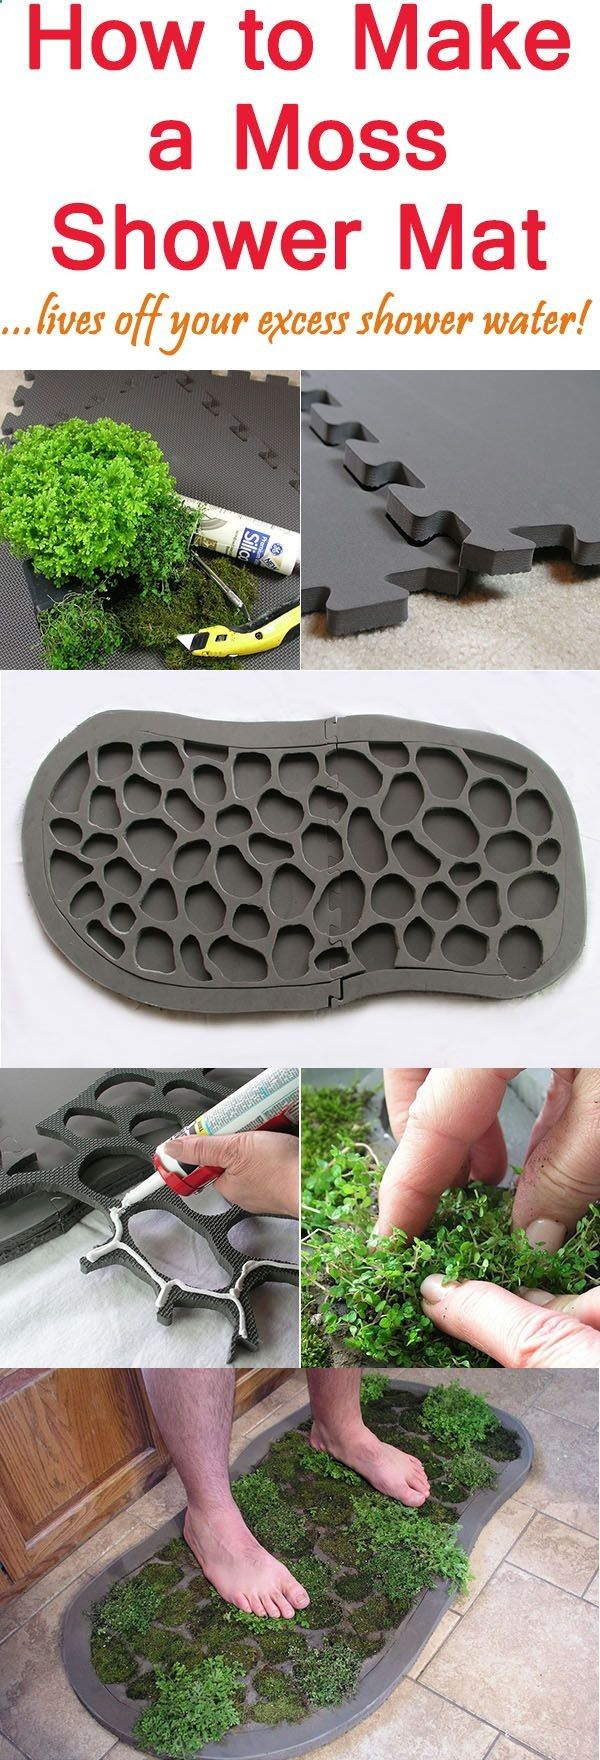 A shower mat that feels good on your feet and lives off the excess water from your shower. Interesting...